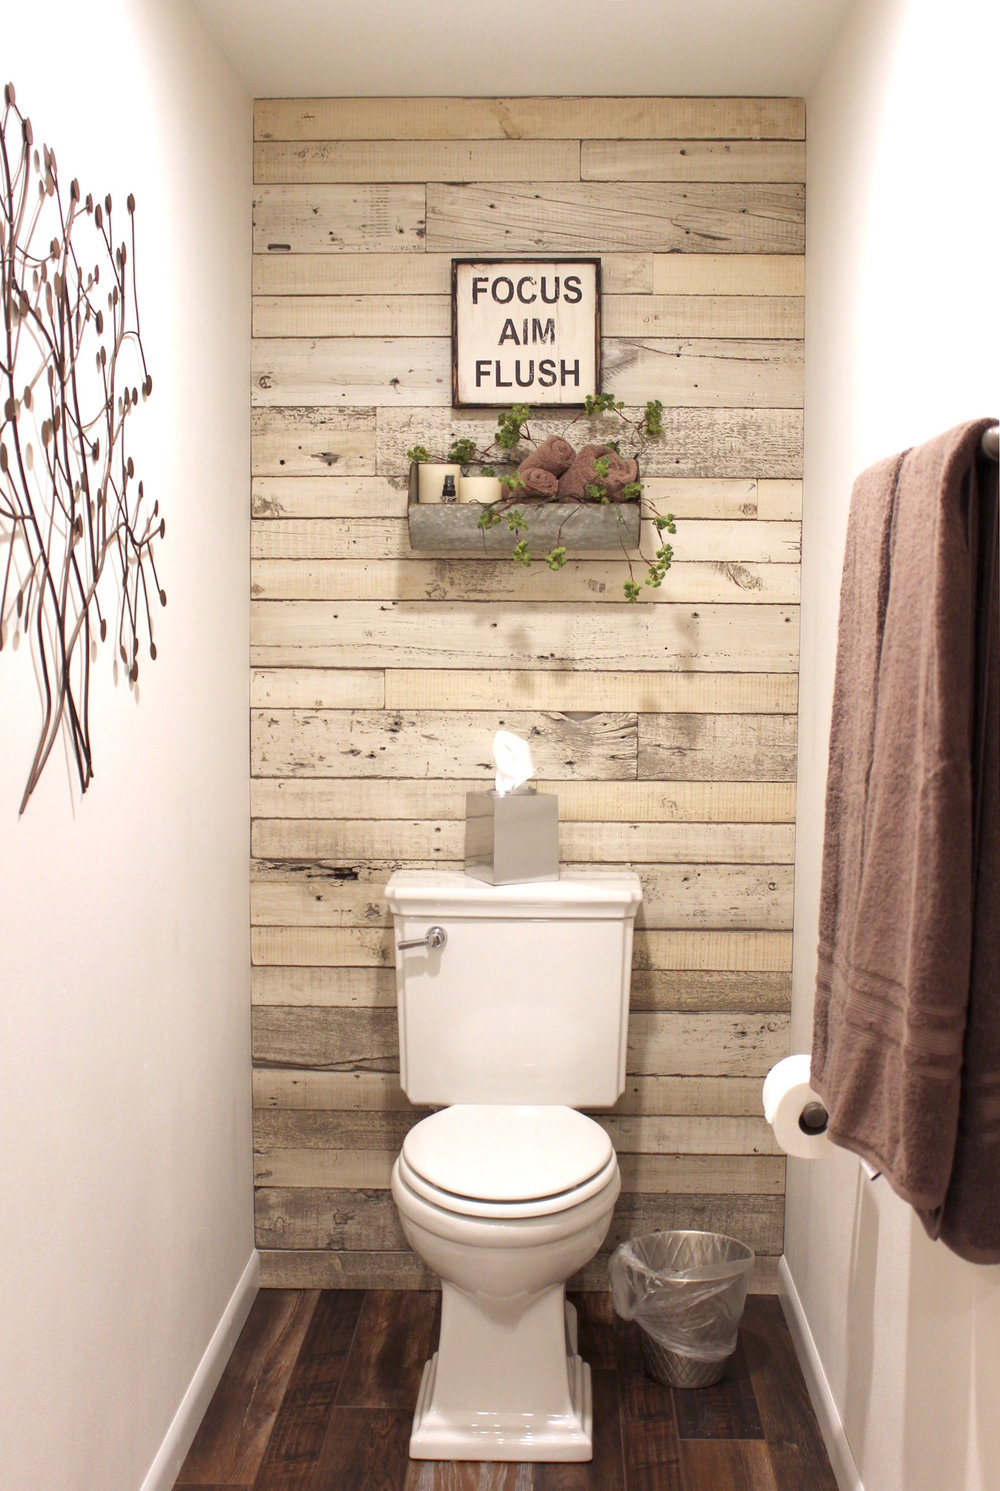 Enchanting Wood Paneling For Bathroom Walls Of Reclaimed White Wash Acnn Decor